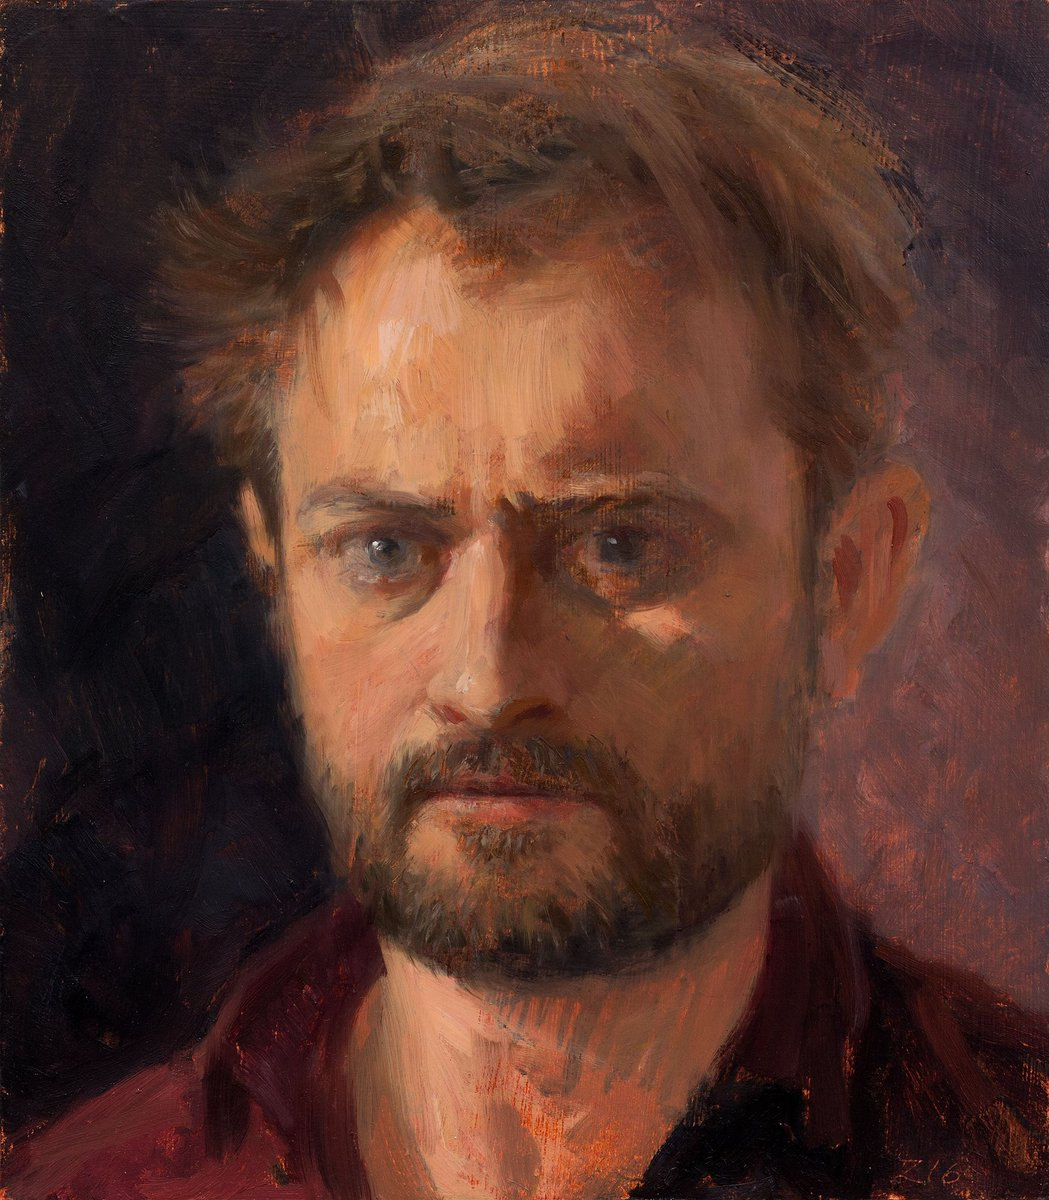 Self portrait, oil on panel, 24 x 21 cm, 2016 #konstonsdag https://t.co/WfKTiG0wKl